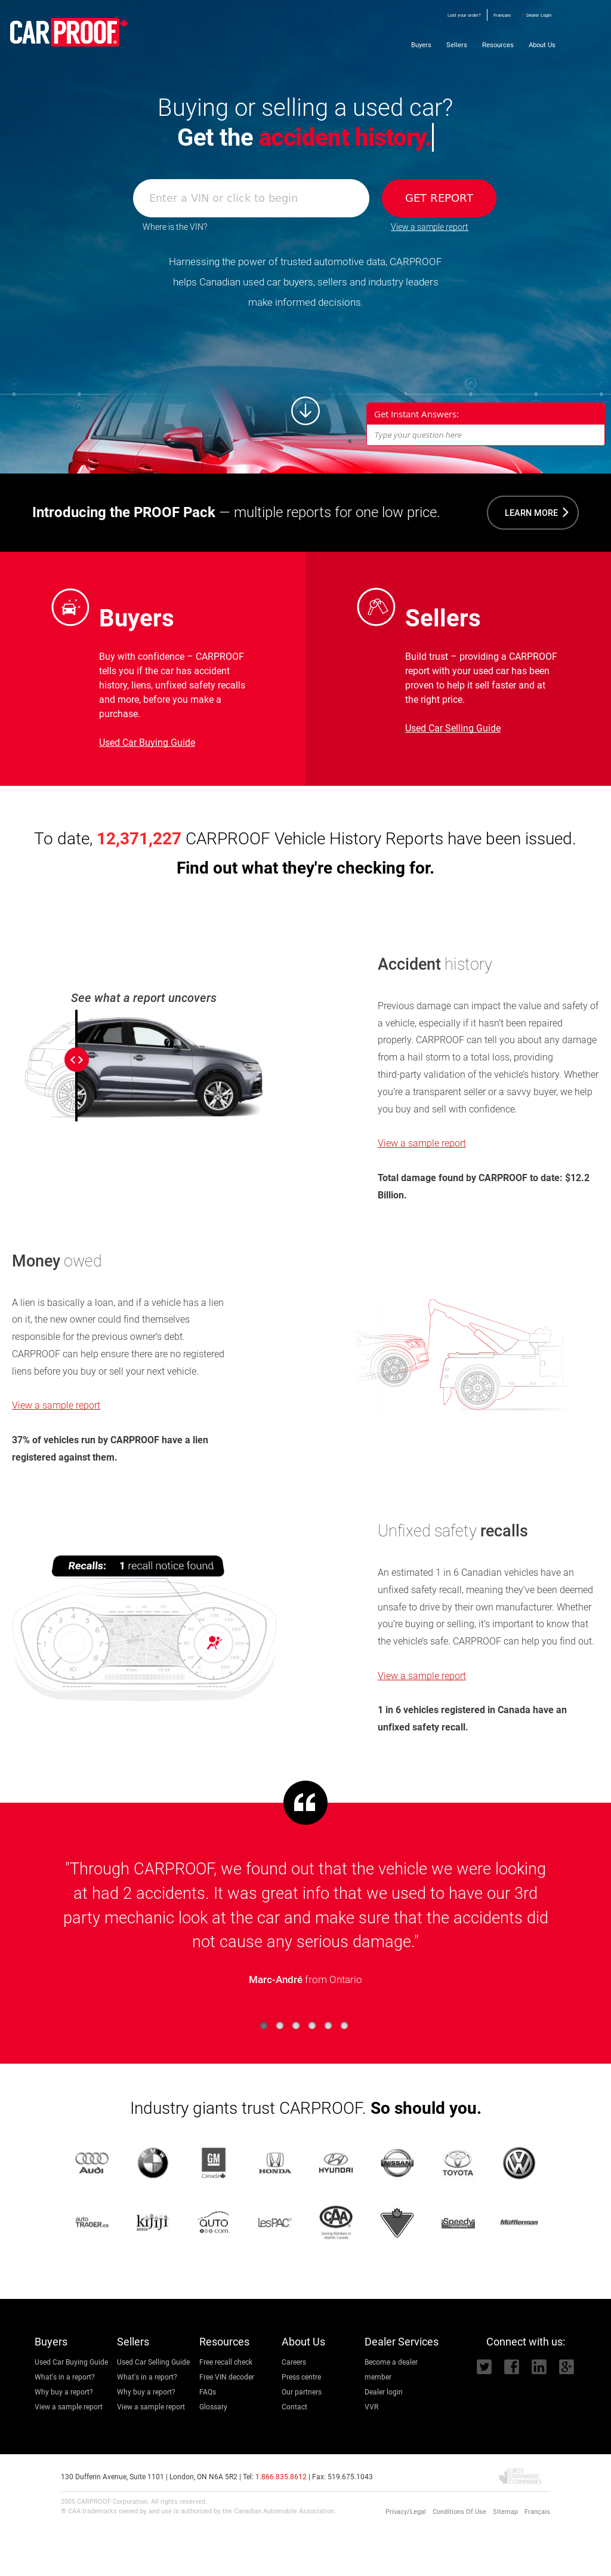 CarProof Competitors, Revenue and Employees - Owler Company Profile